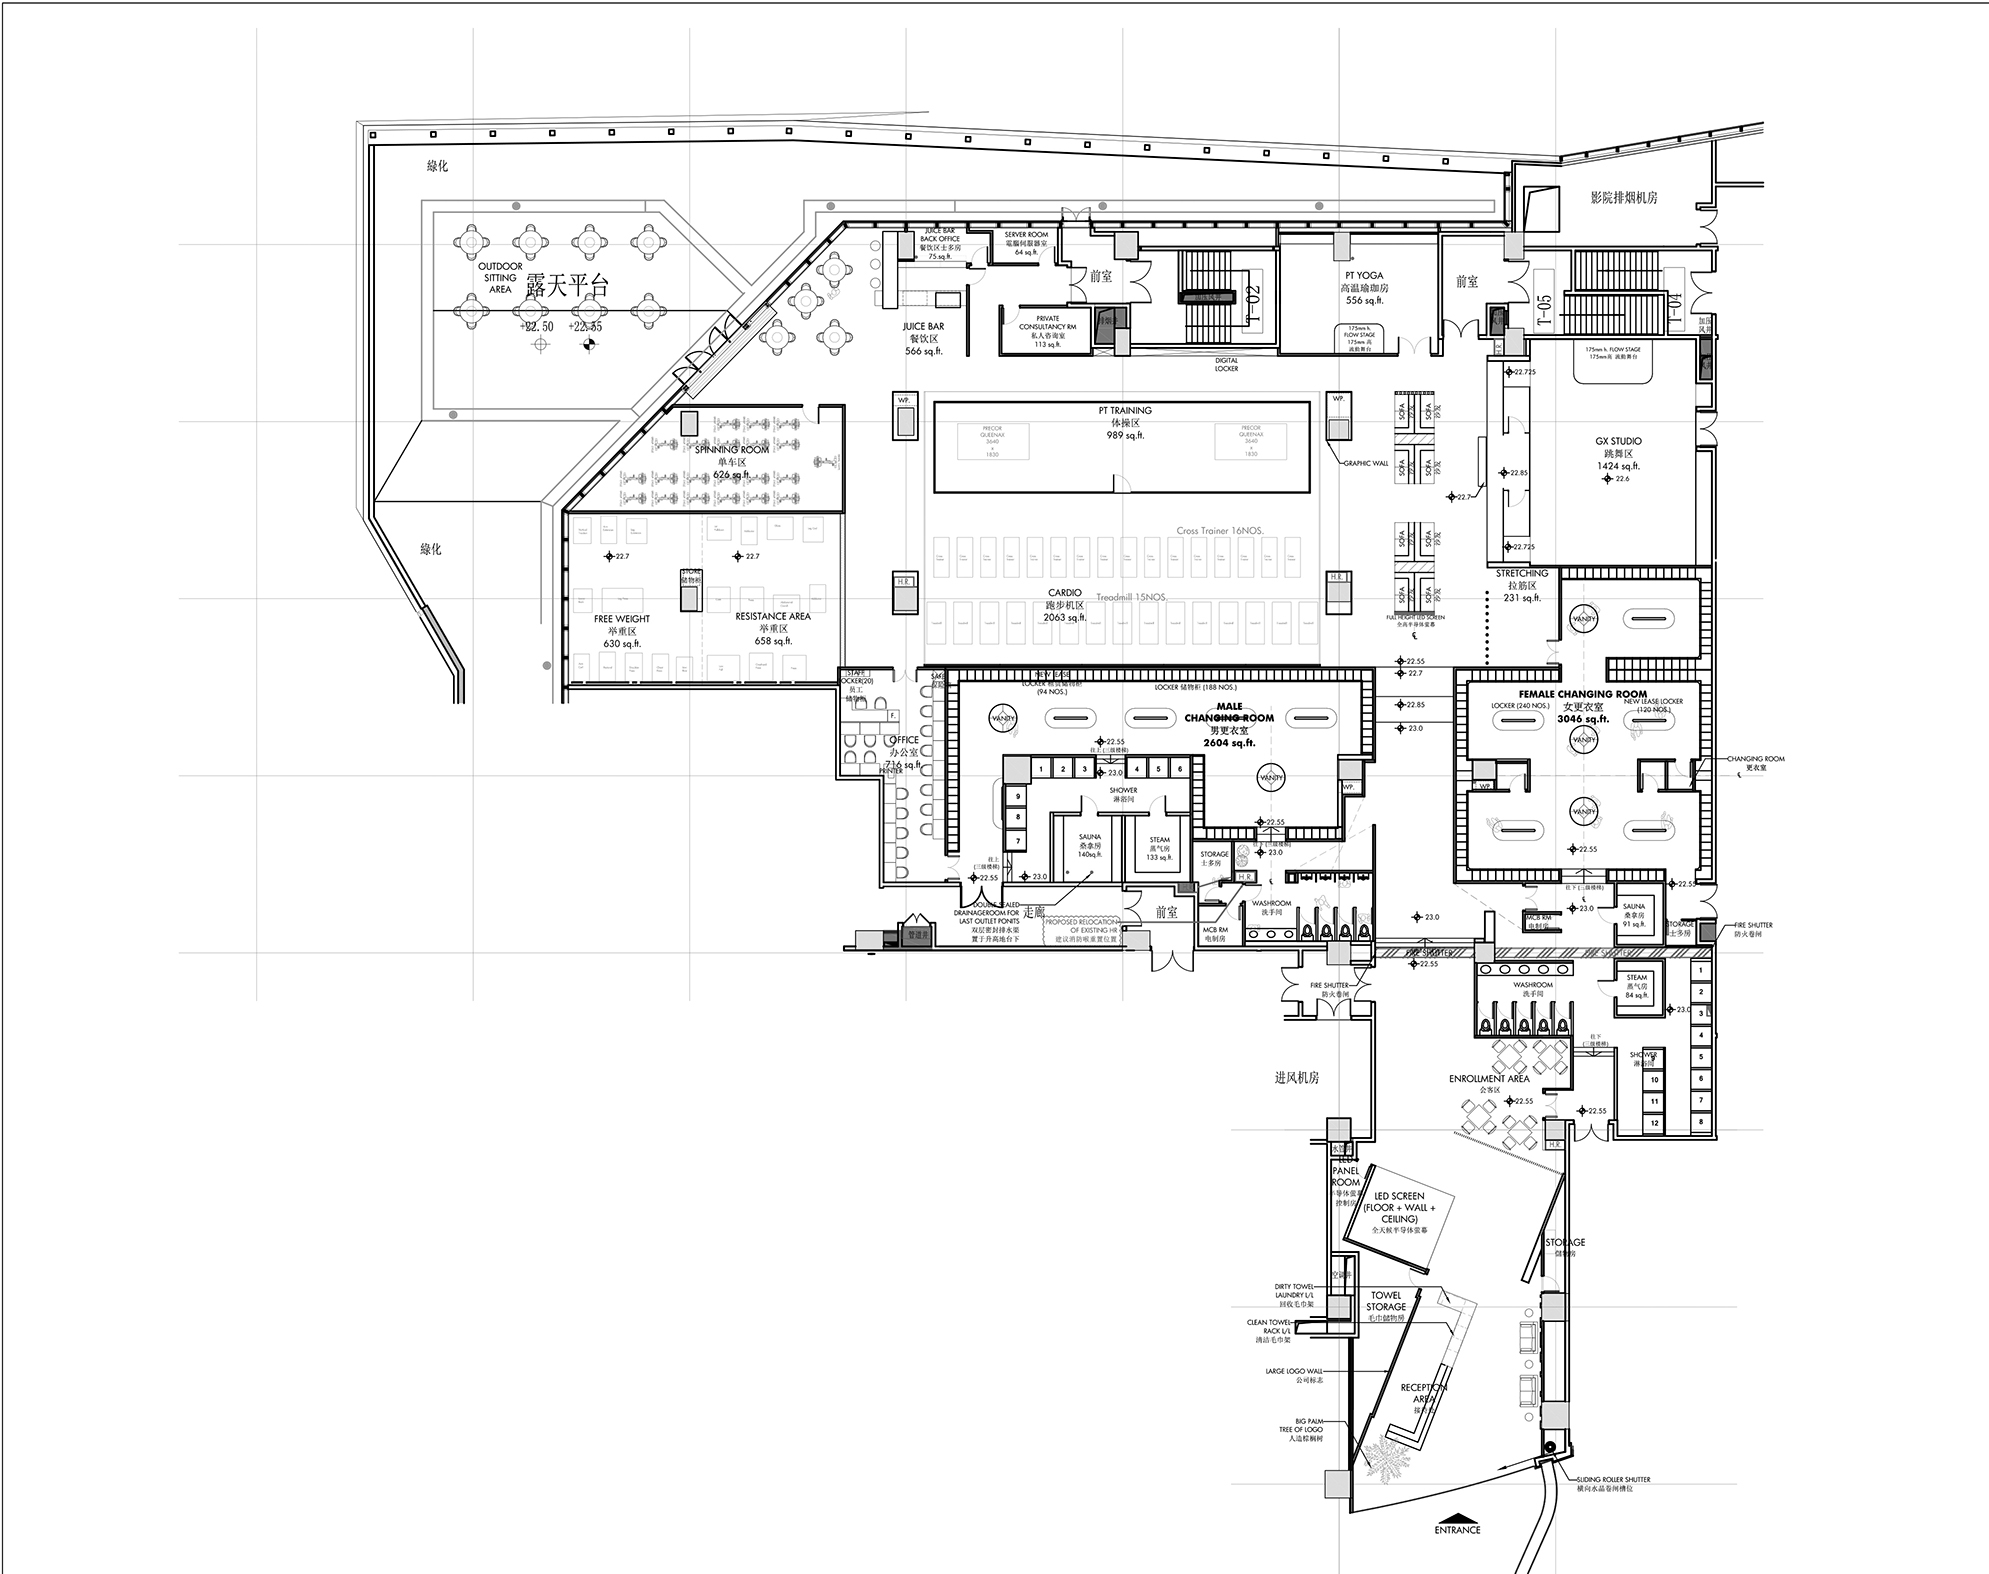 01_Layout Plan_20160530-1.jpg